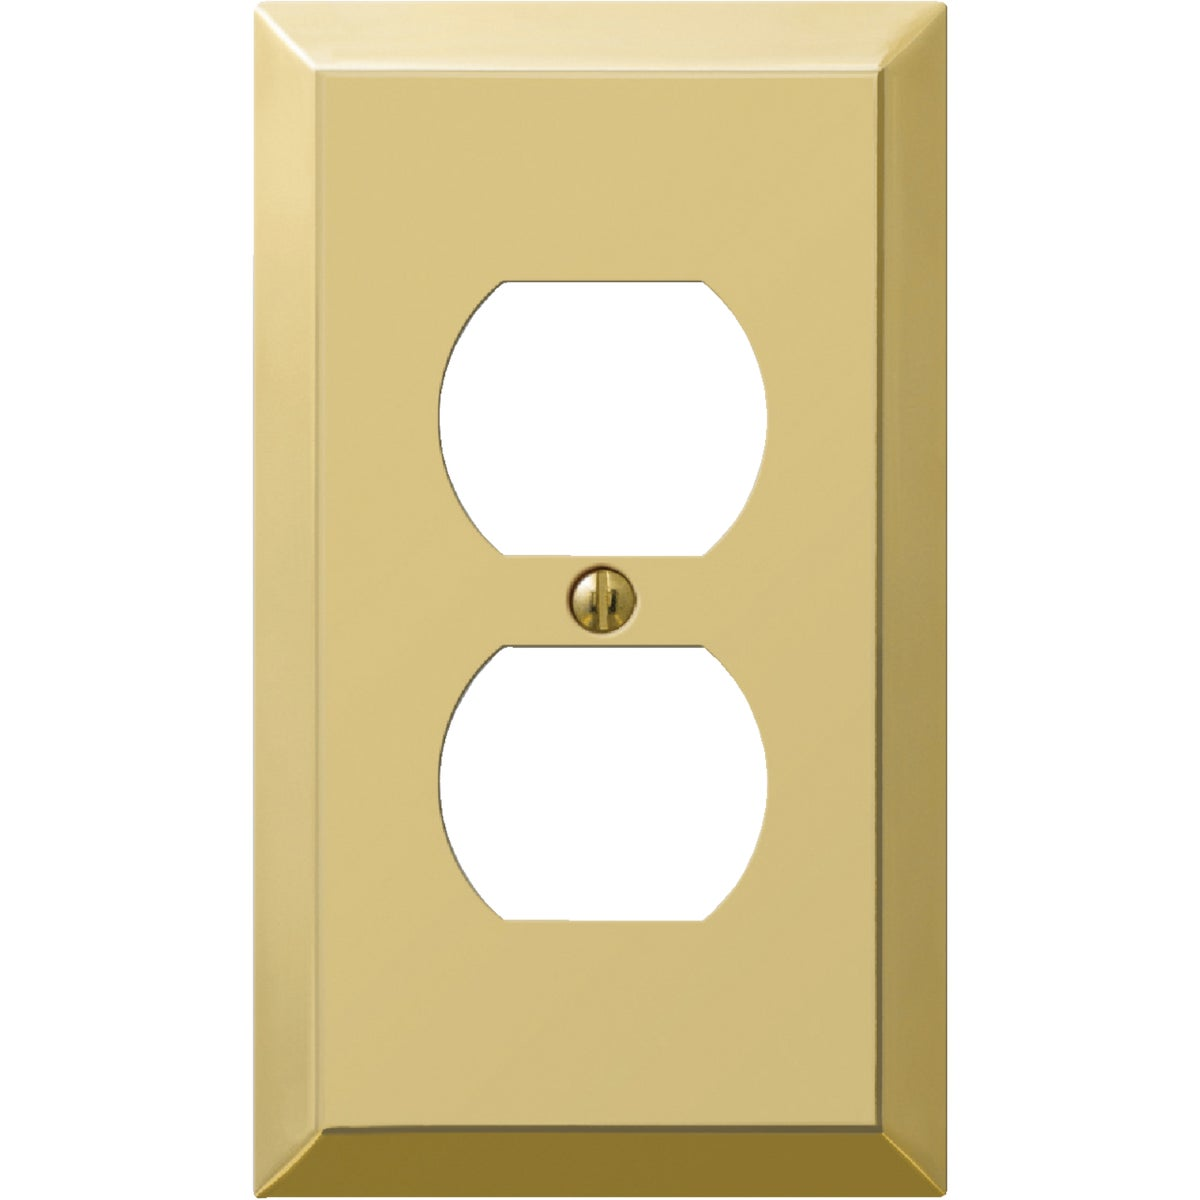 BRS OUTLET WALL PLATE - 9BS108 by Jackson Deerfield Mf